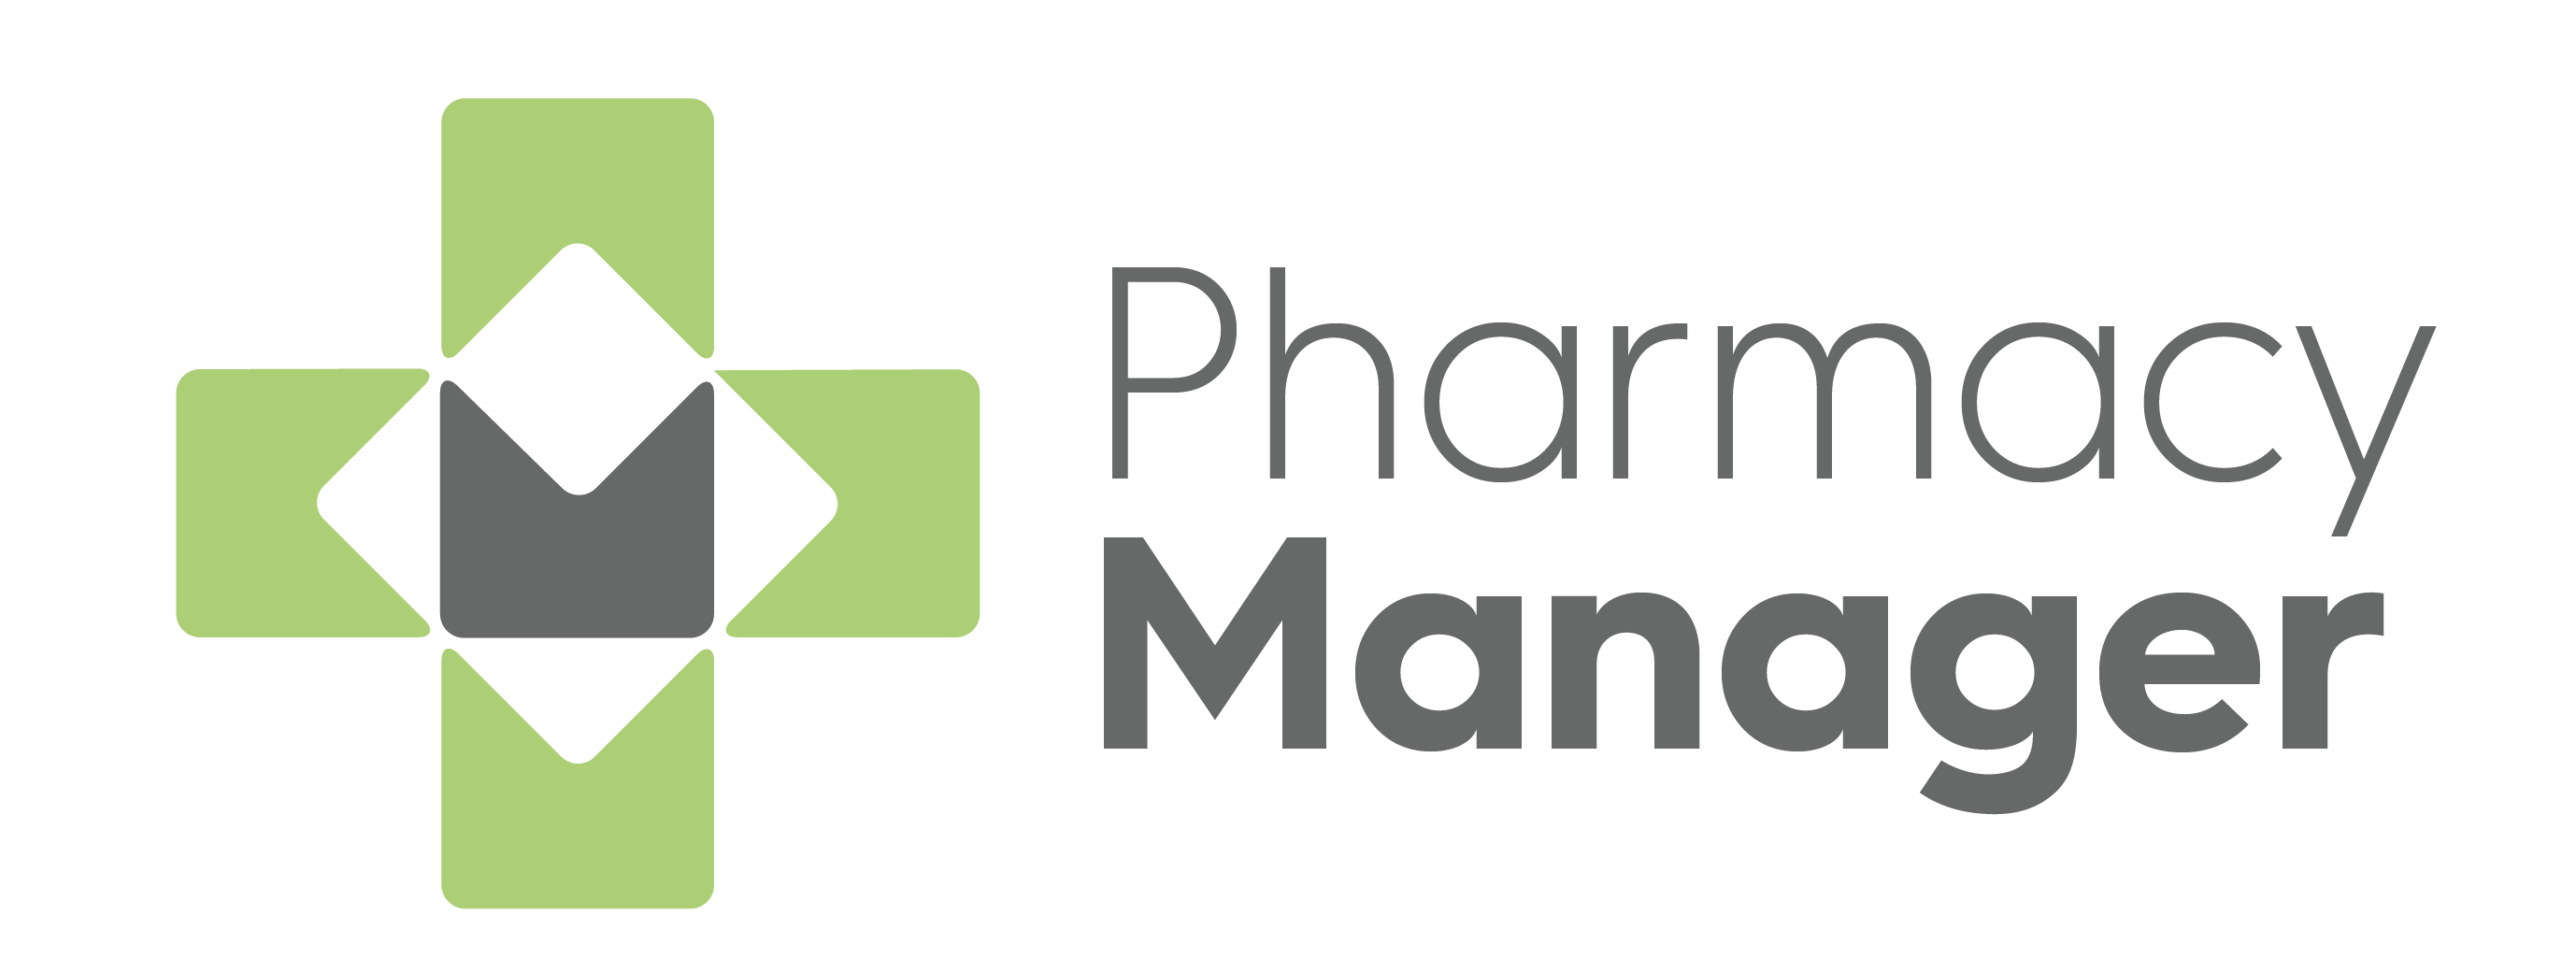 CHS_Pharmacy Manager logo